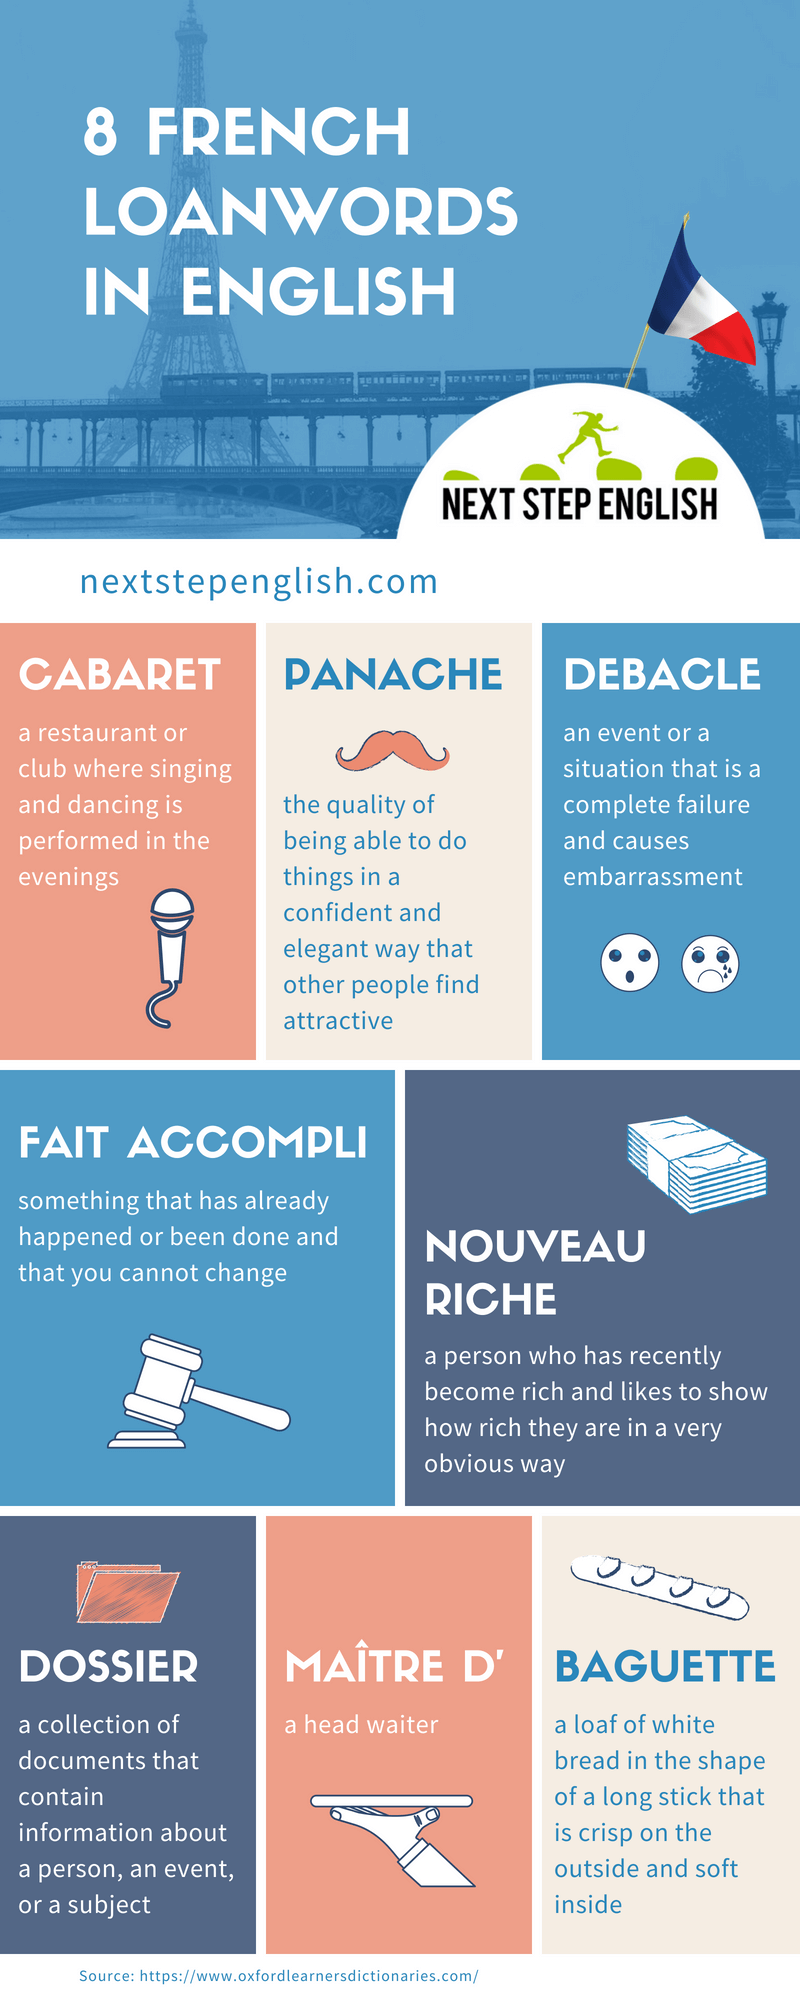 Infographic about french loanwords in English